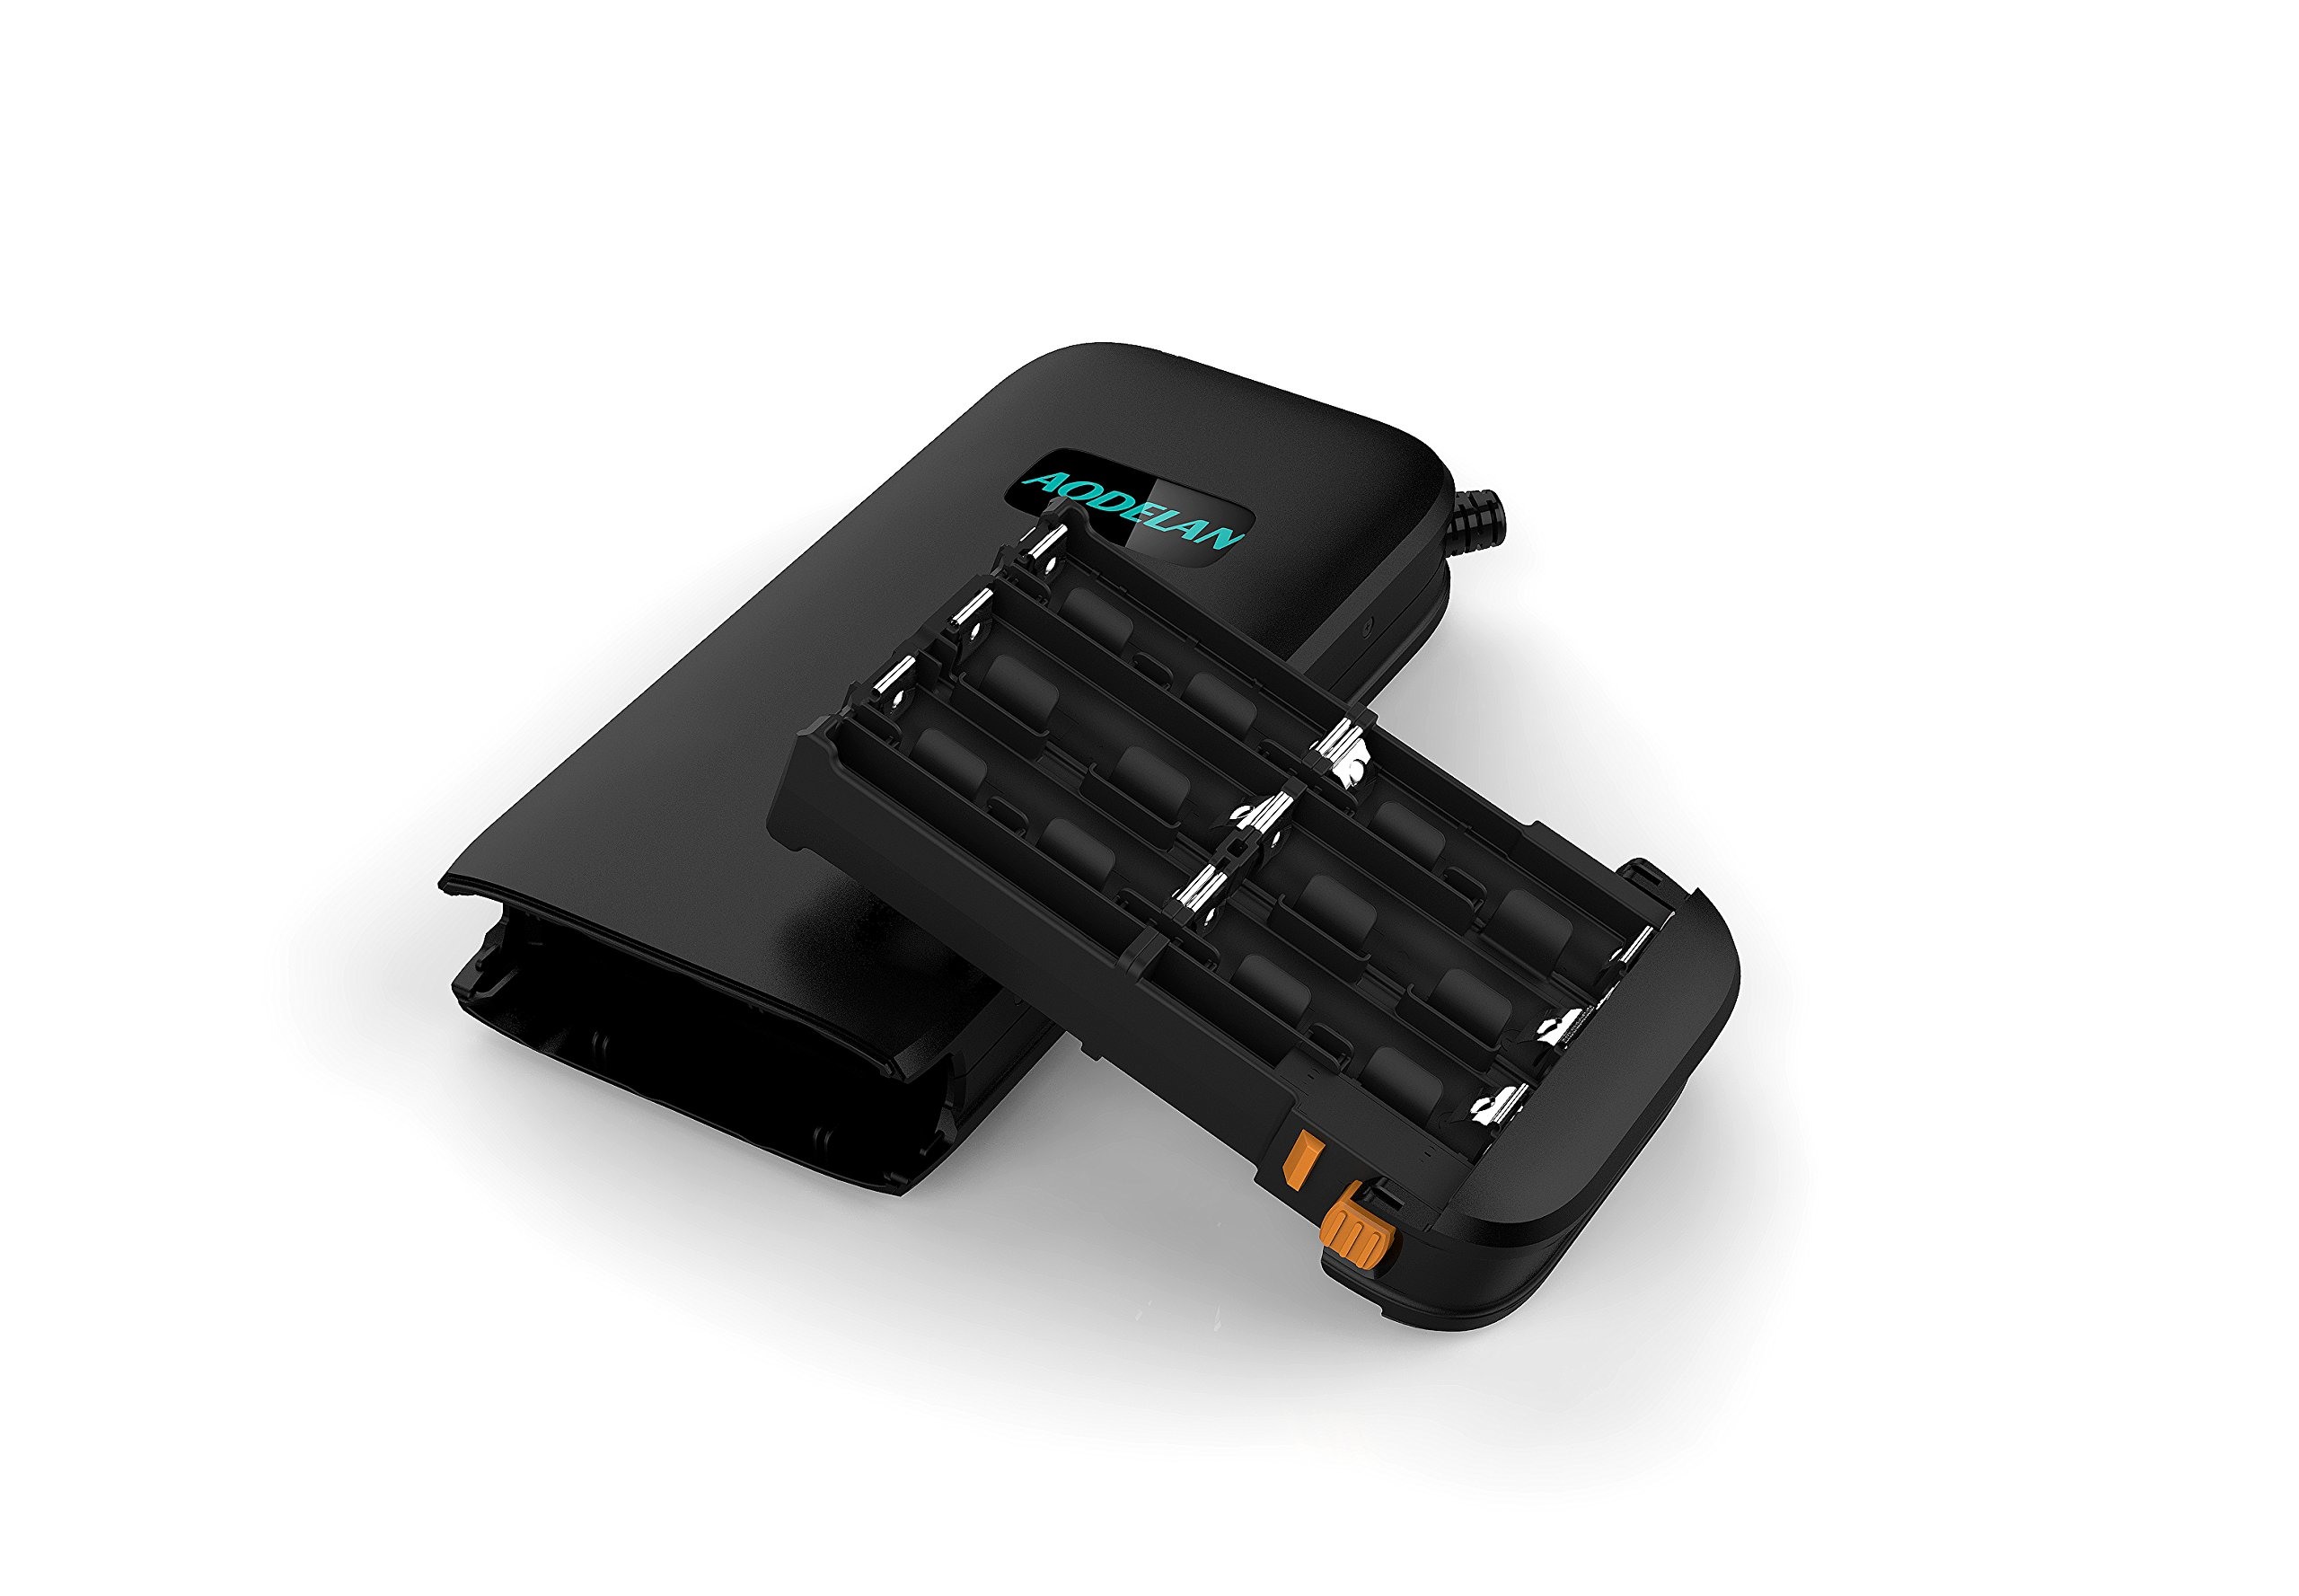 AODELAN External Flash Battery Tray Battery Power Bank Tray (Tray Only)